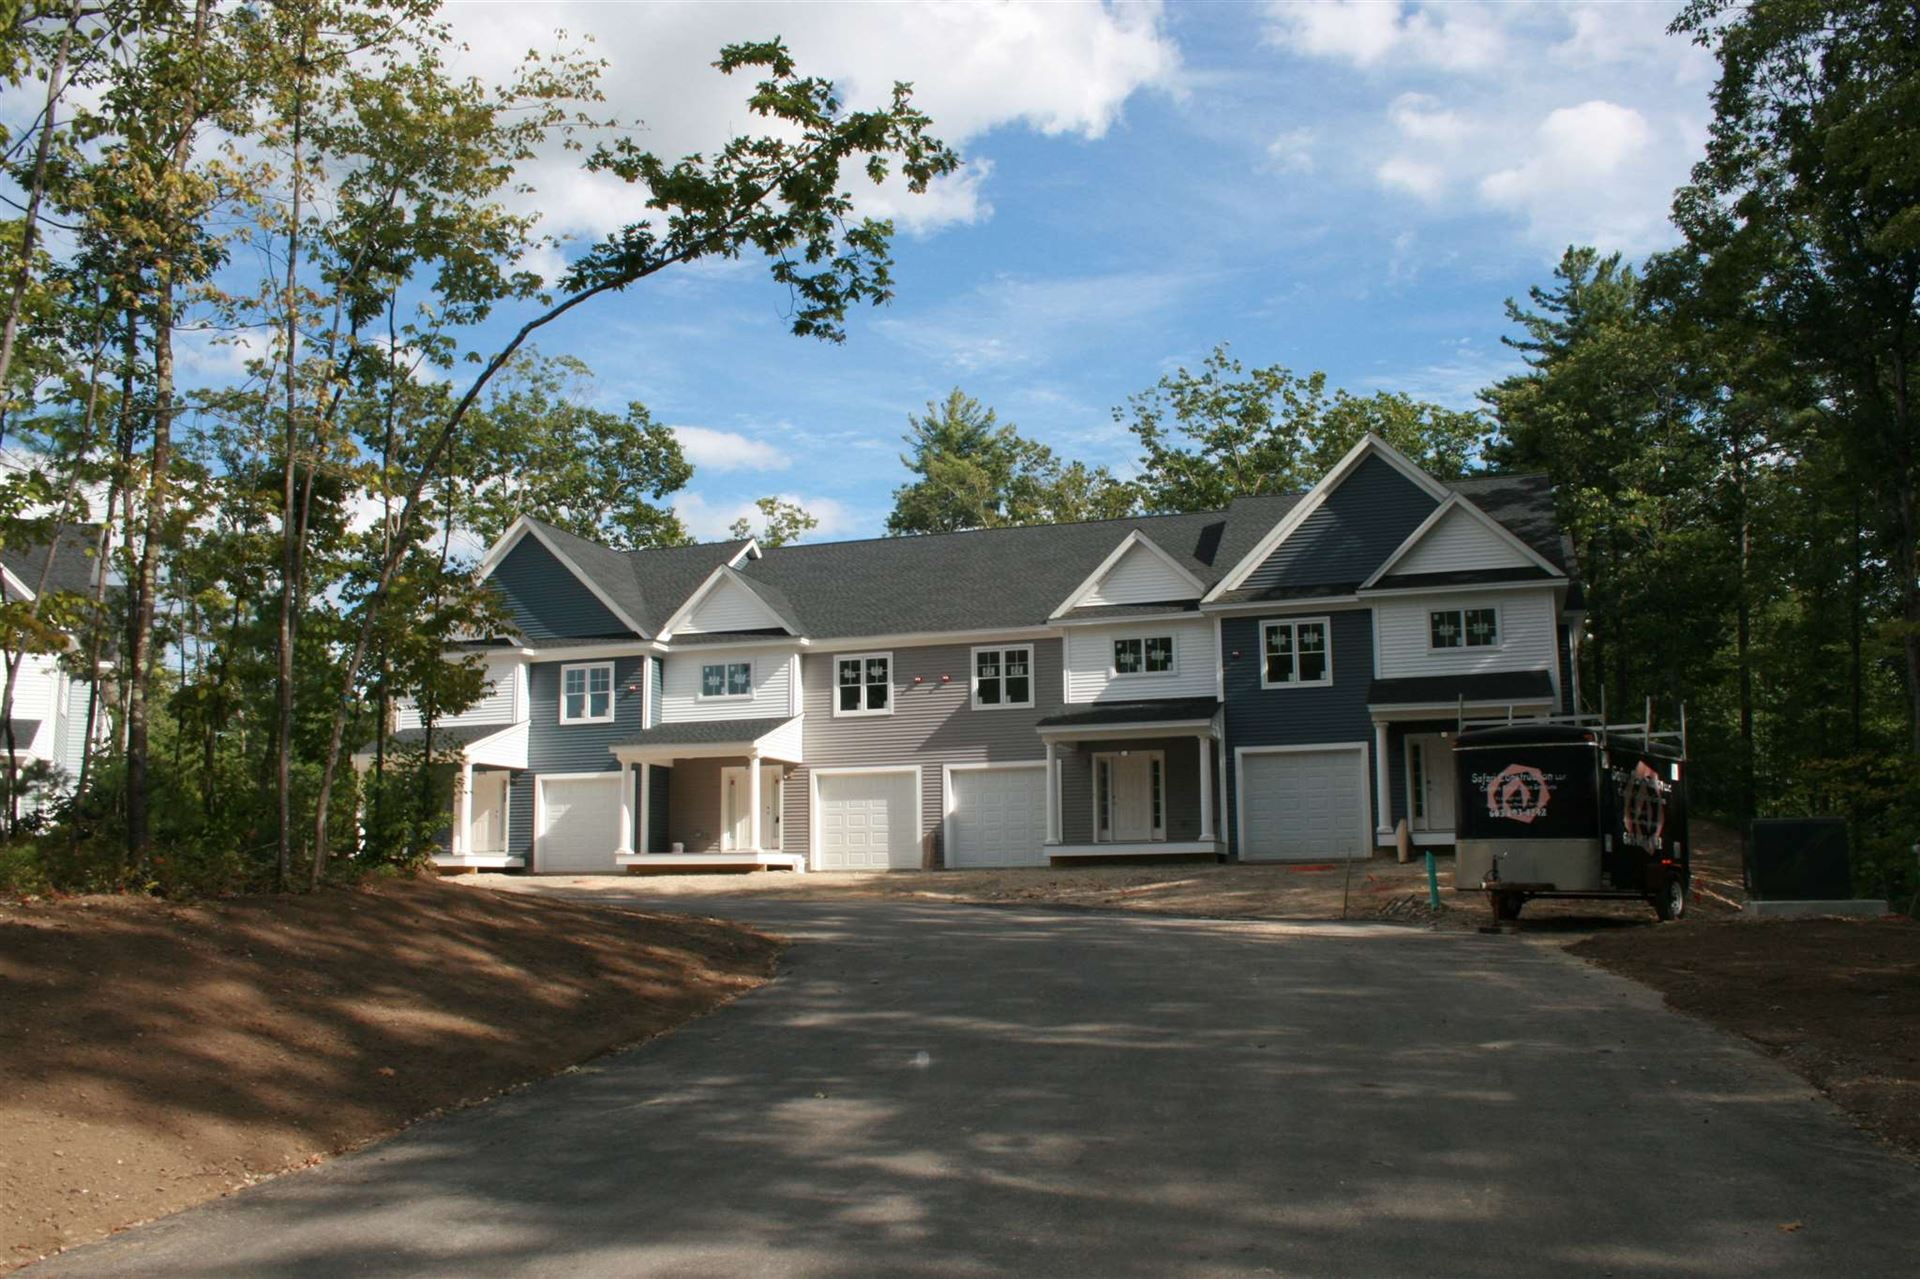 232 Knollwood Way, Manchester, NH 03102 - #: 4804924